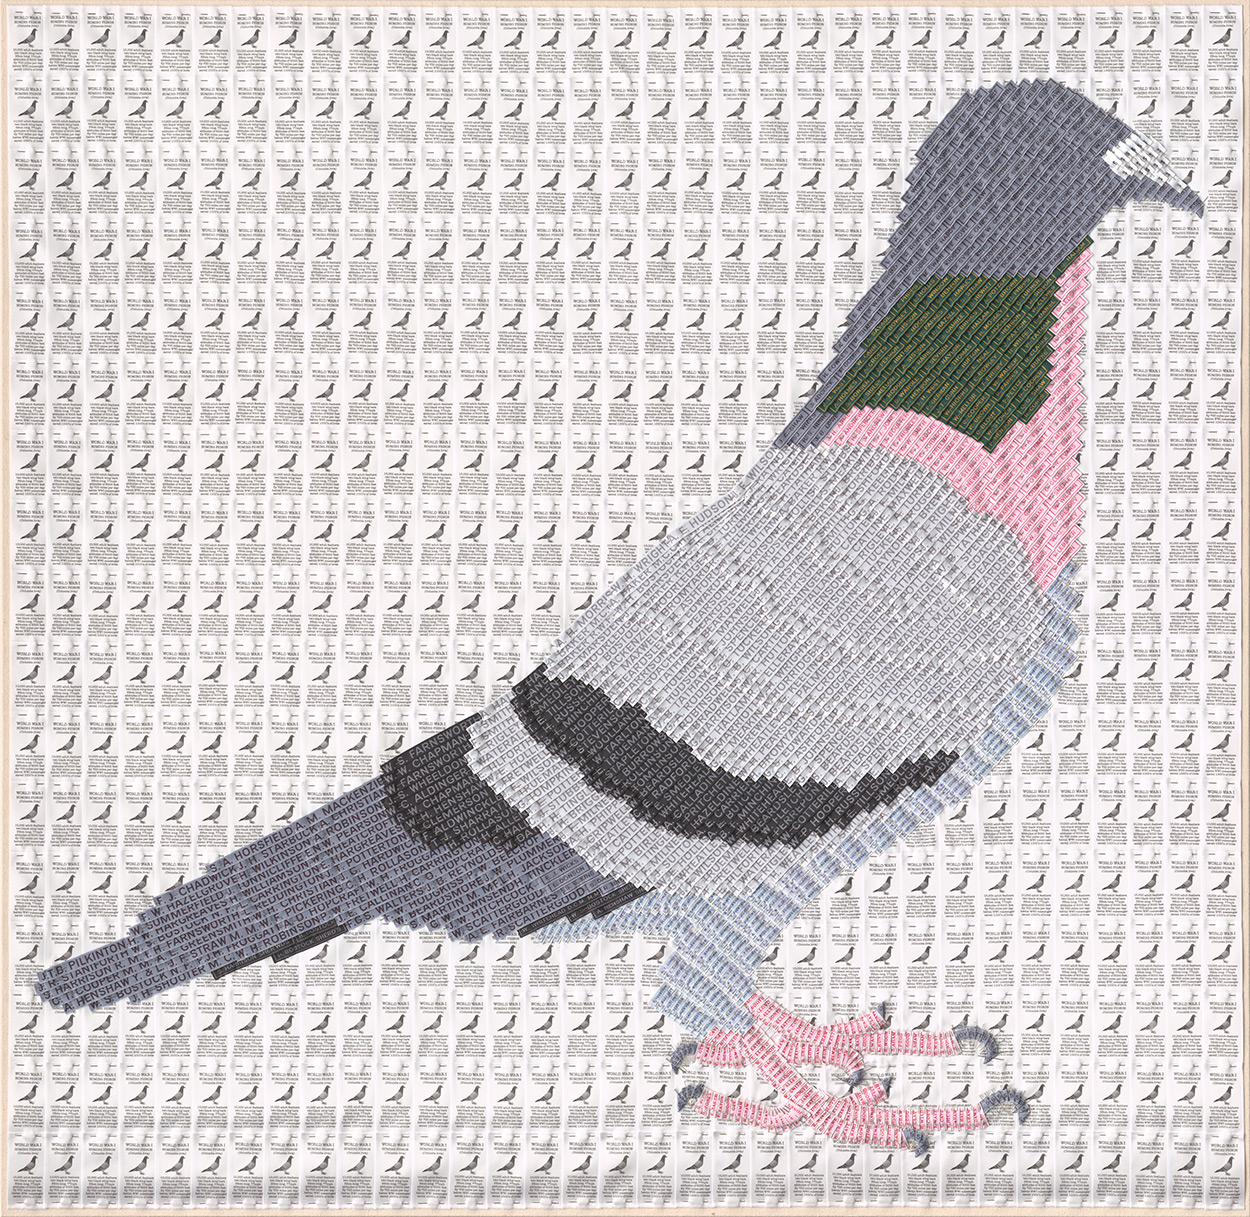 Joy Pitts 2015 Homing pigeon .jpg